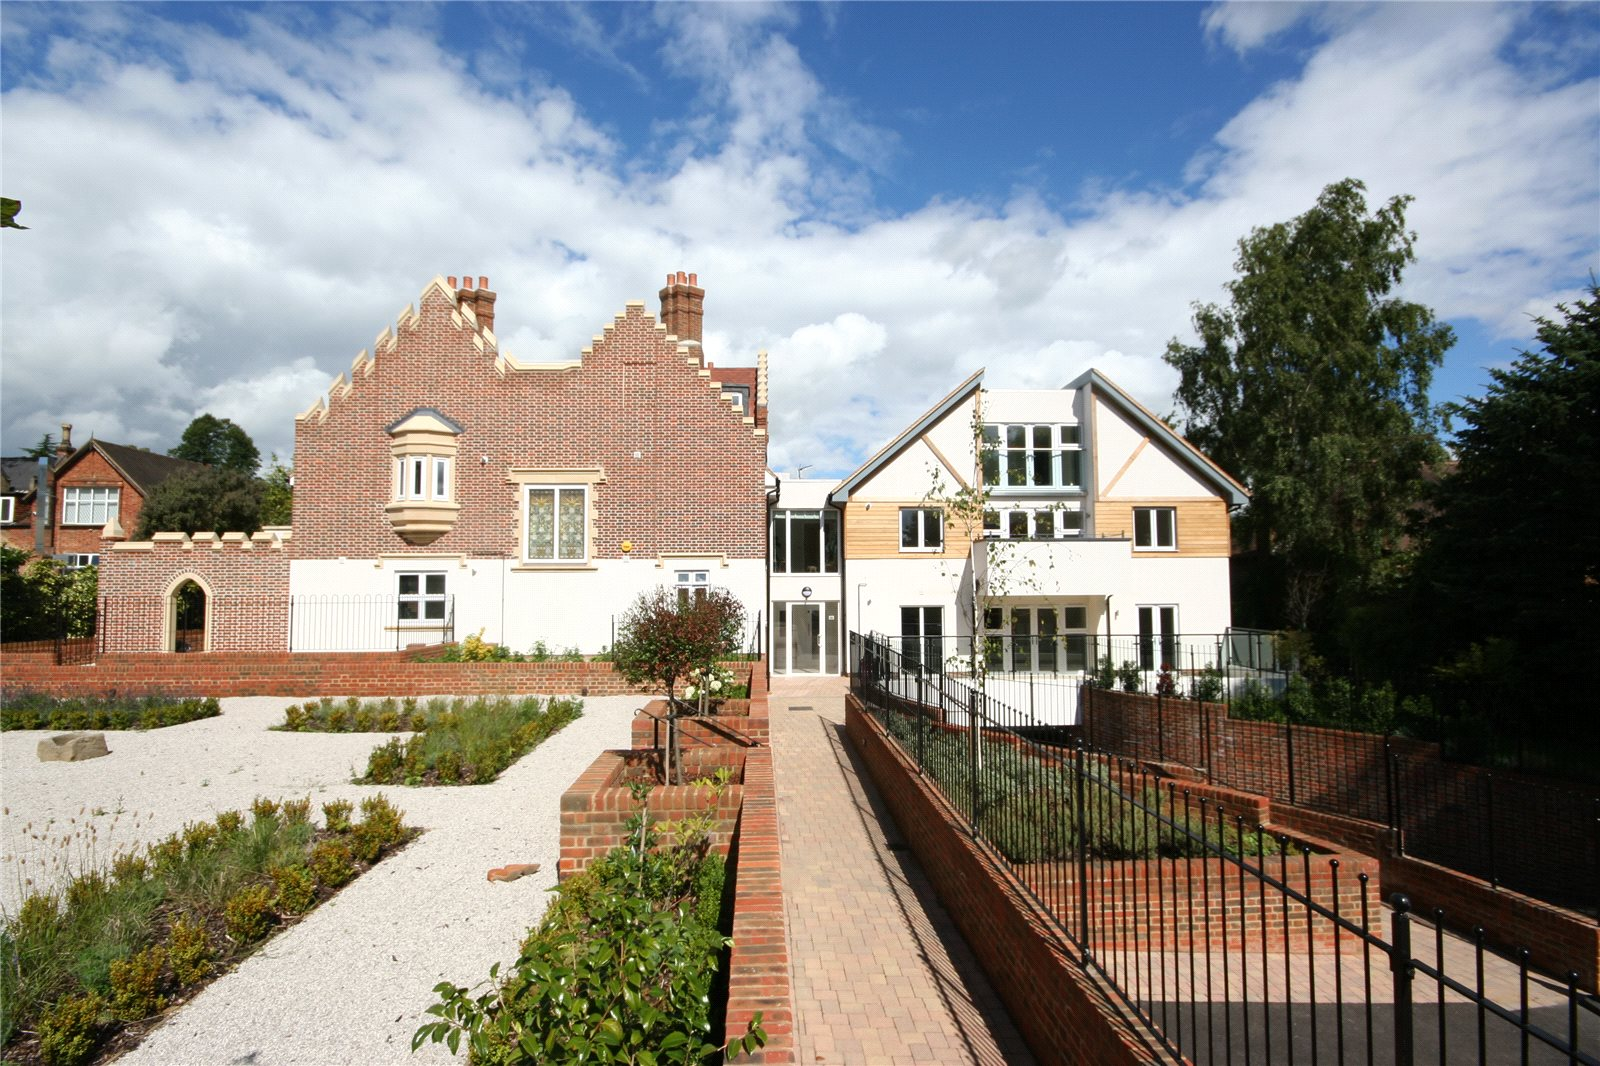 Apartamento por un Venta en Scholars Place, South Park Drive, Gerrards Cross, Buckinghamshire, SL9 Gerrards Cross, Inglaterra